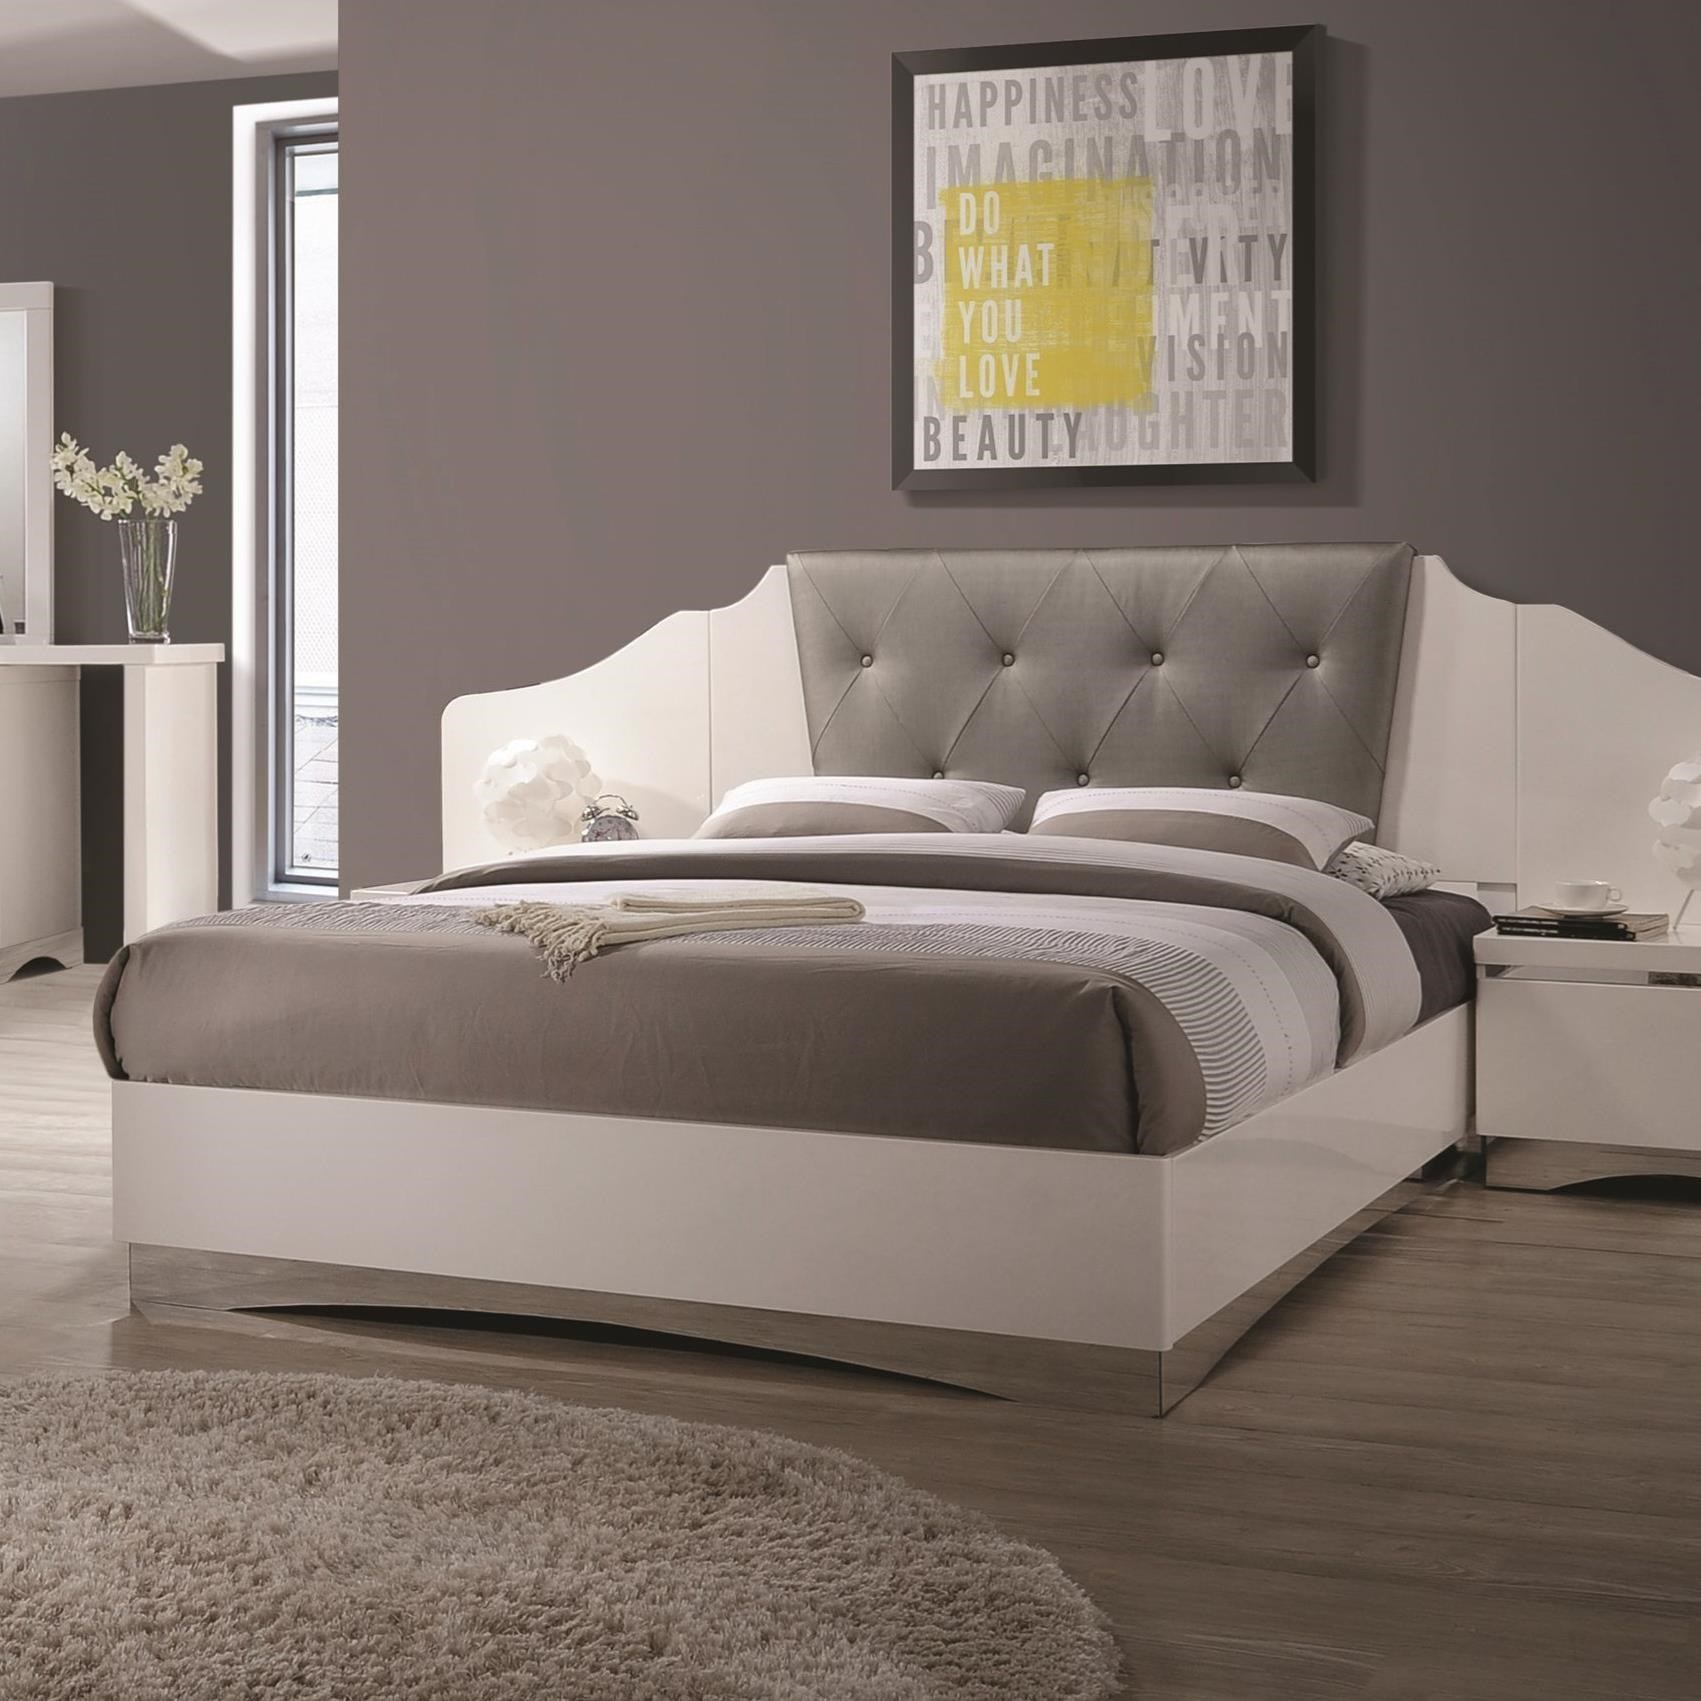 Alessandro King Low Profile Bed With Upholstered Panel